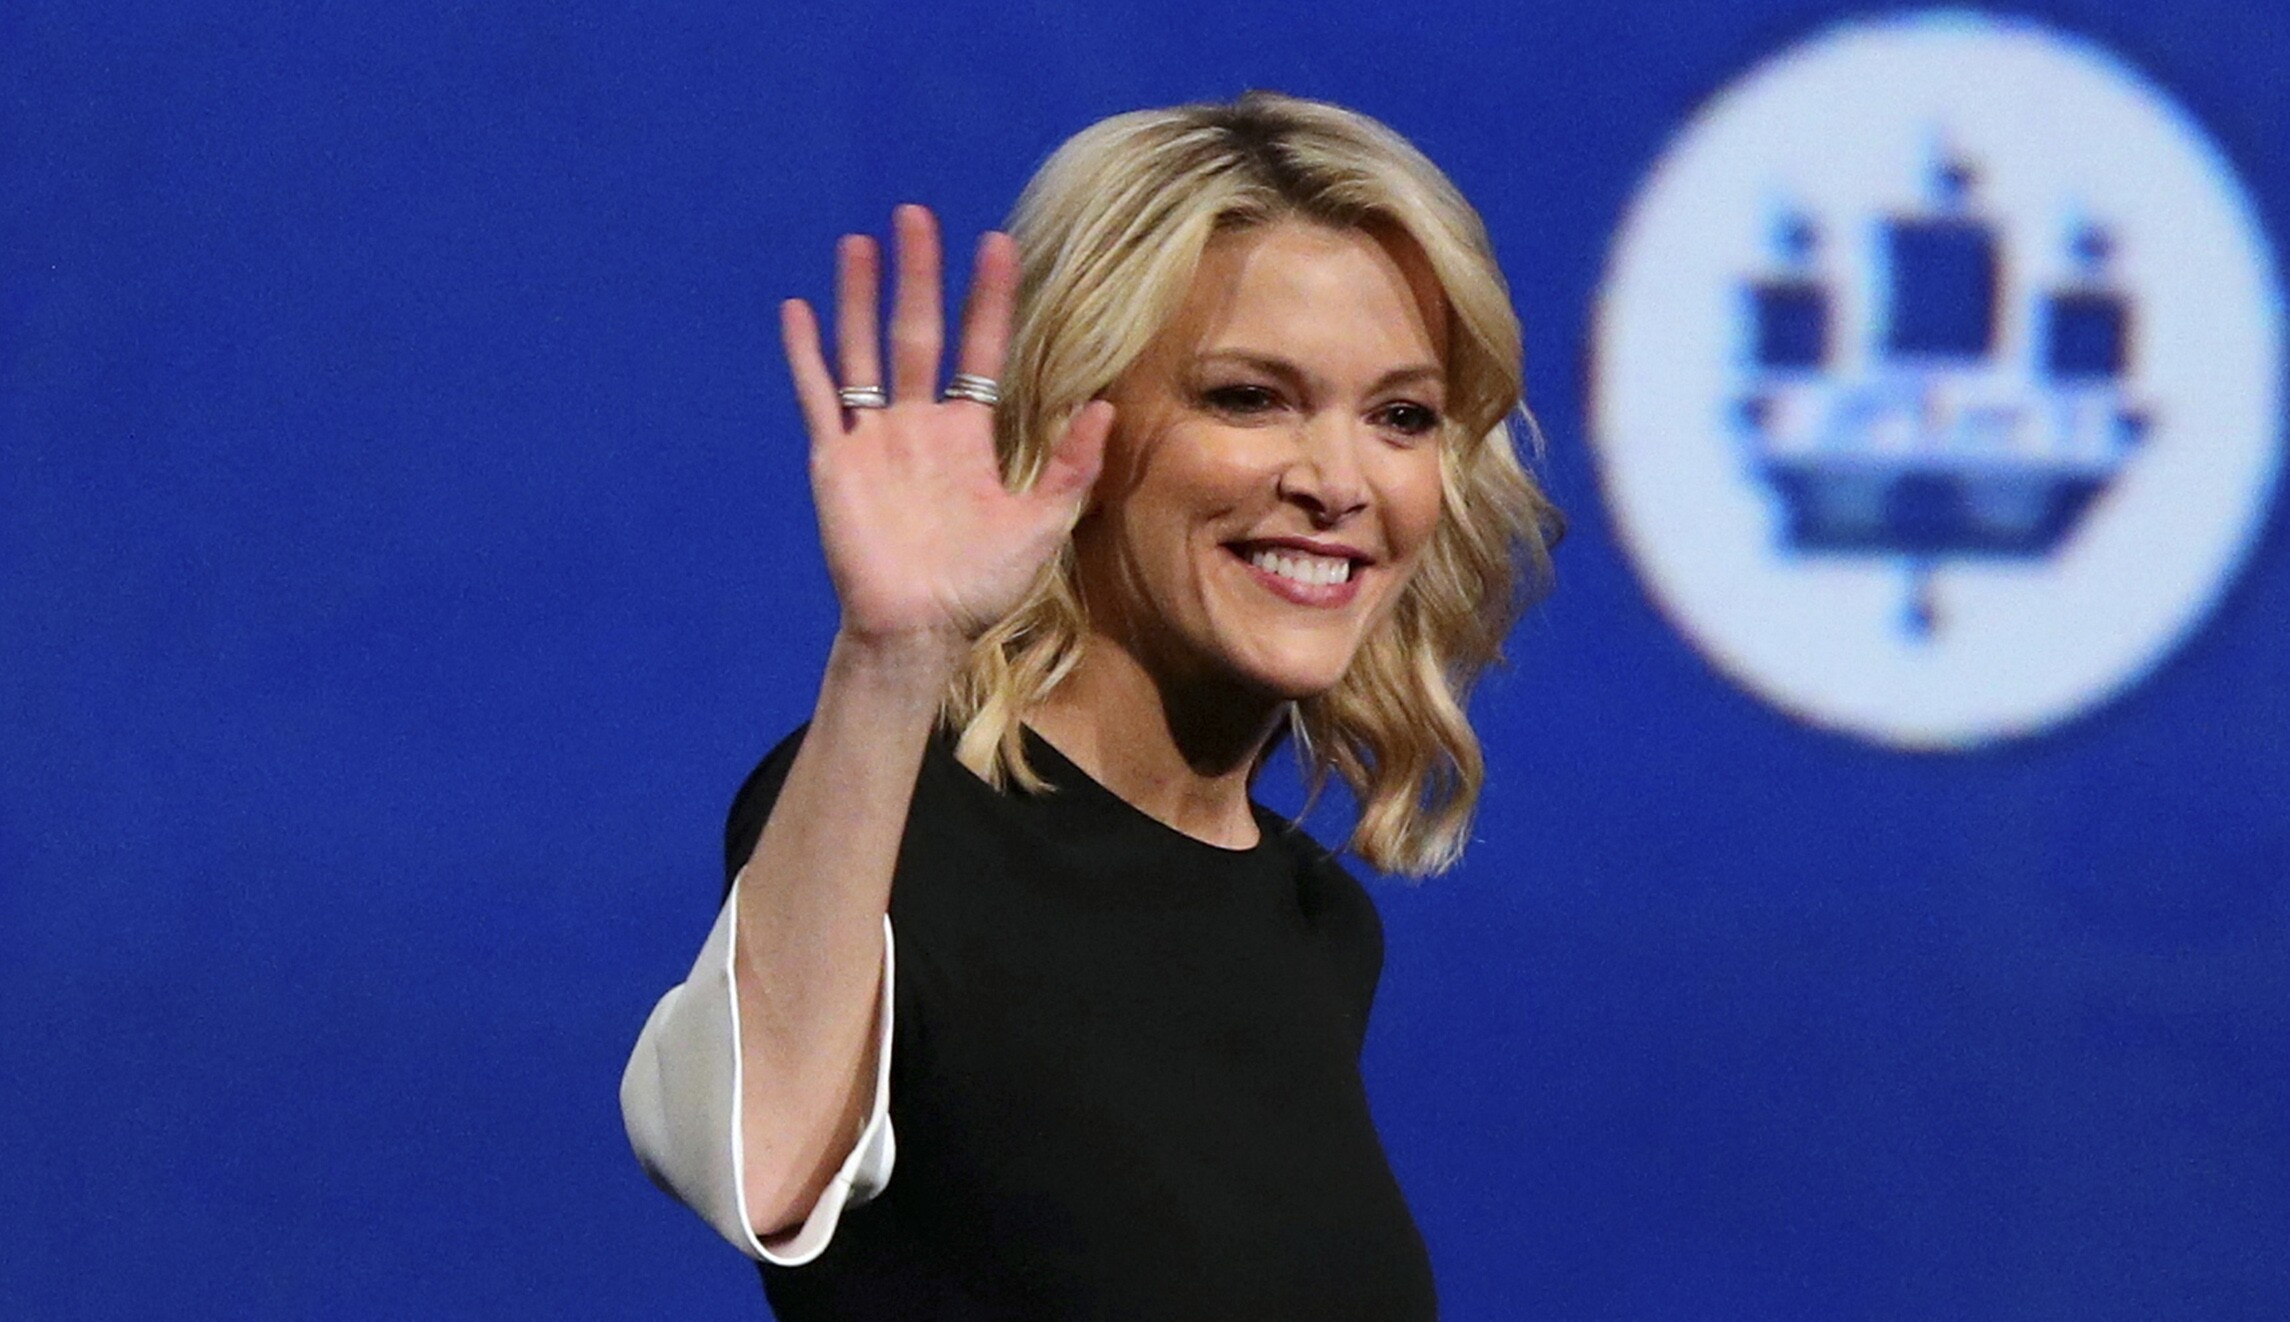 JPMorgan Chase exec questions advertising with Megyn Kelly